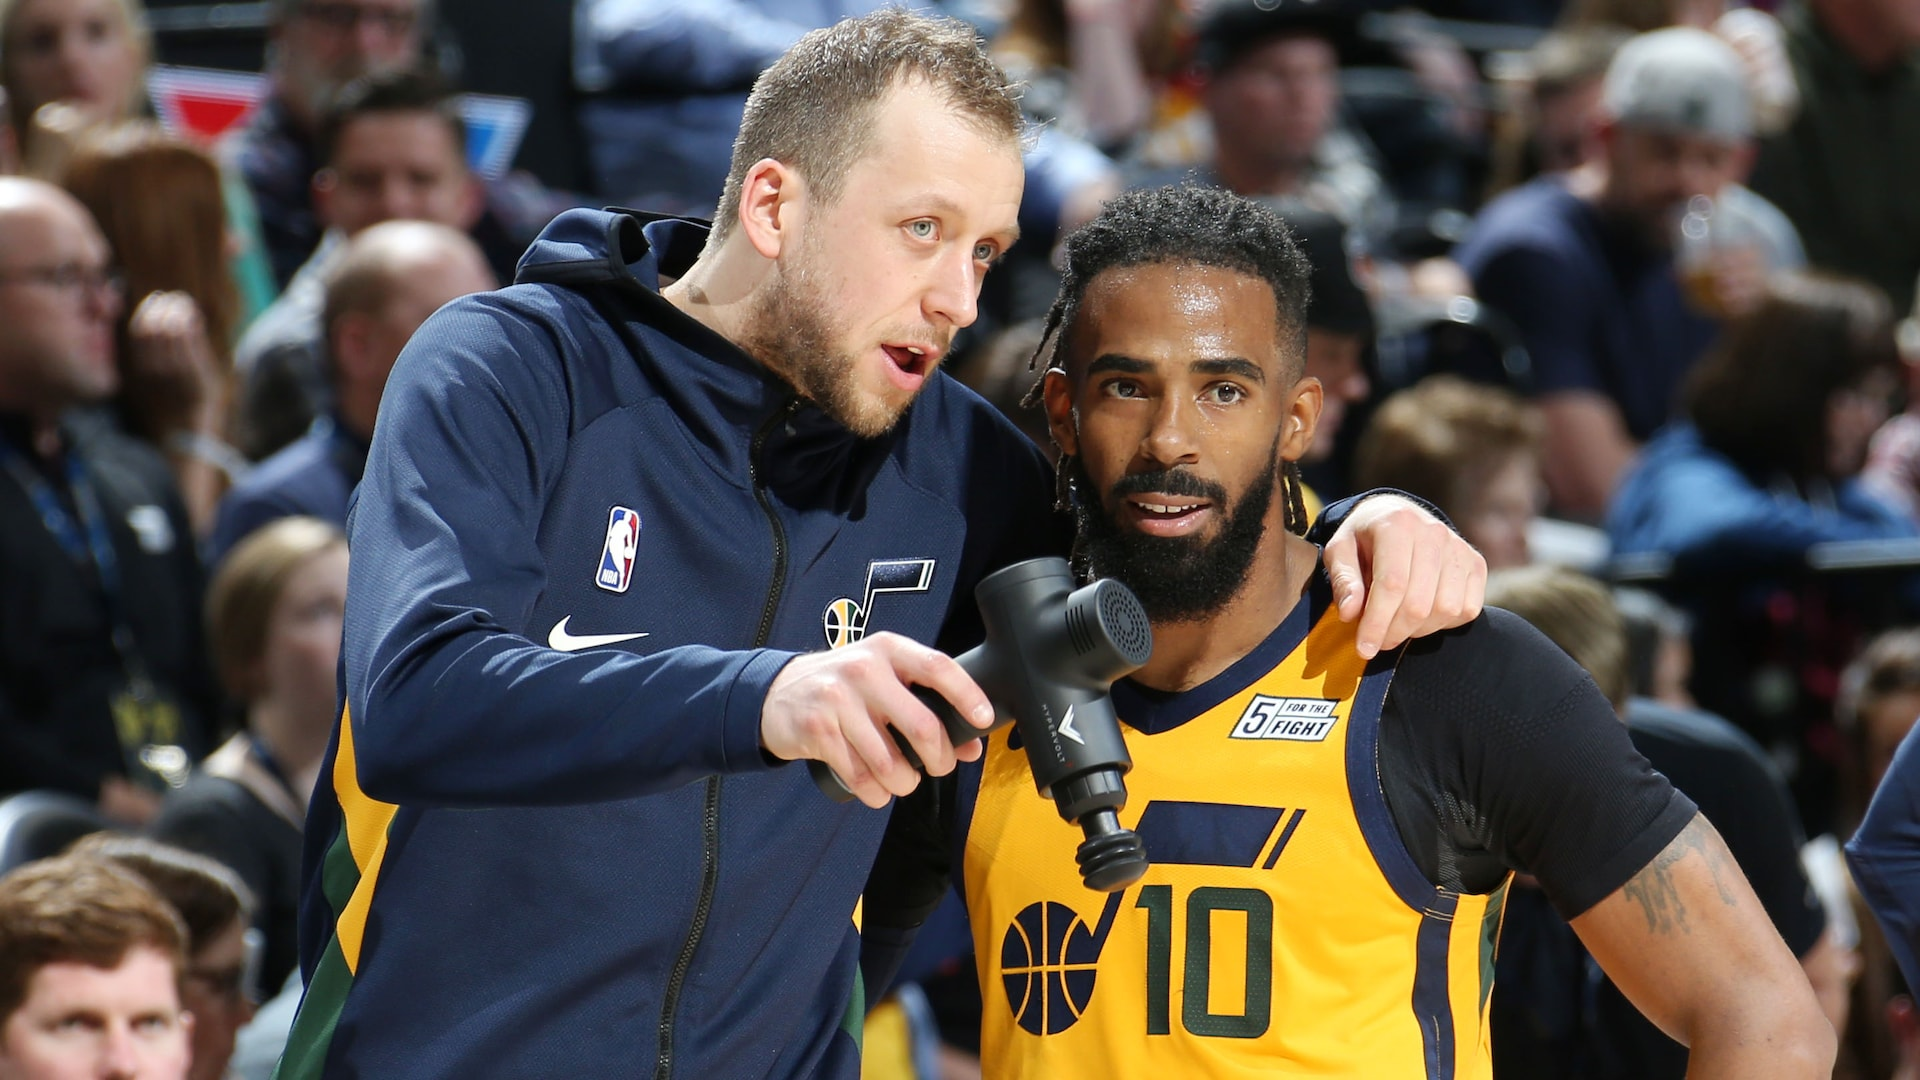 Friday's notebook: The Jazz are on an offensive tear and still missing a key piece